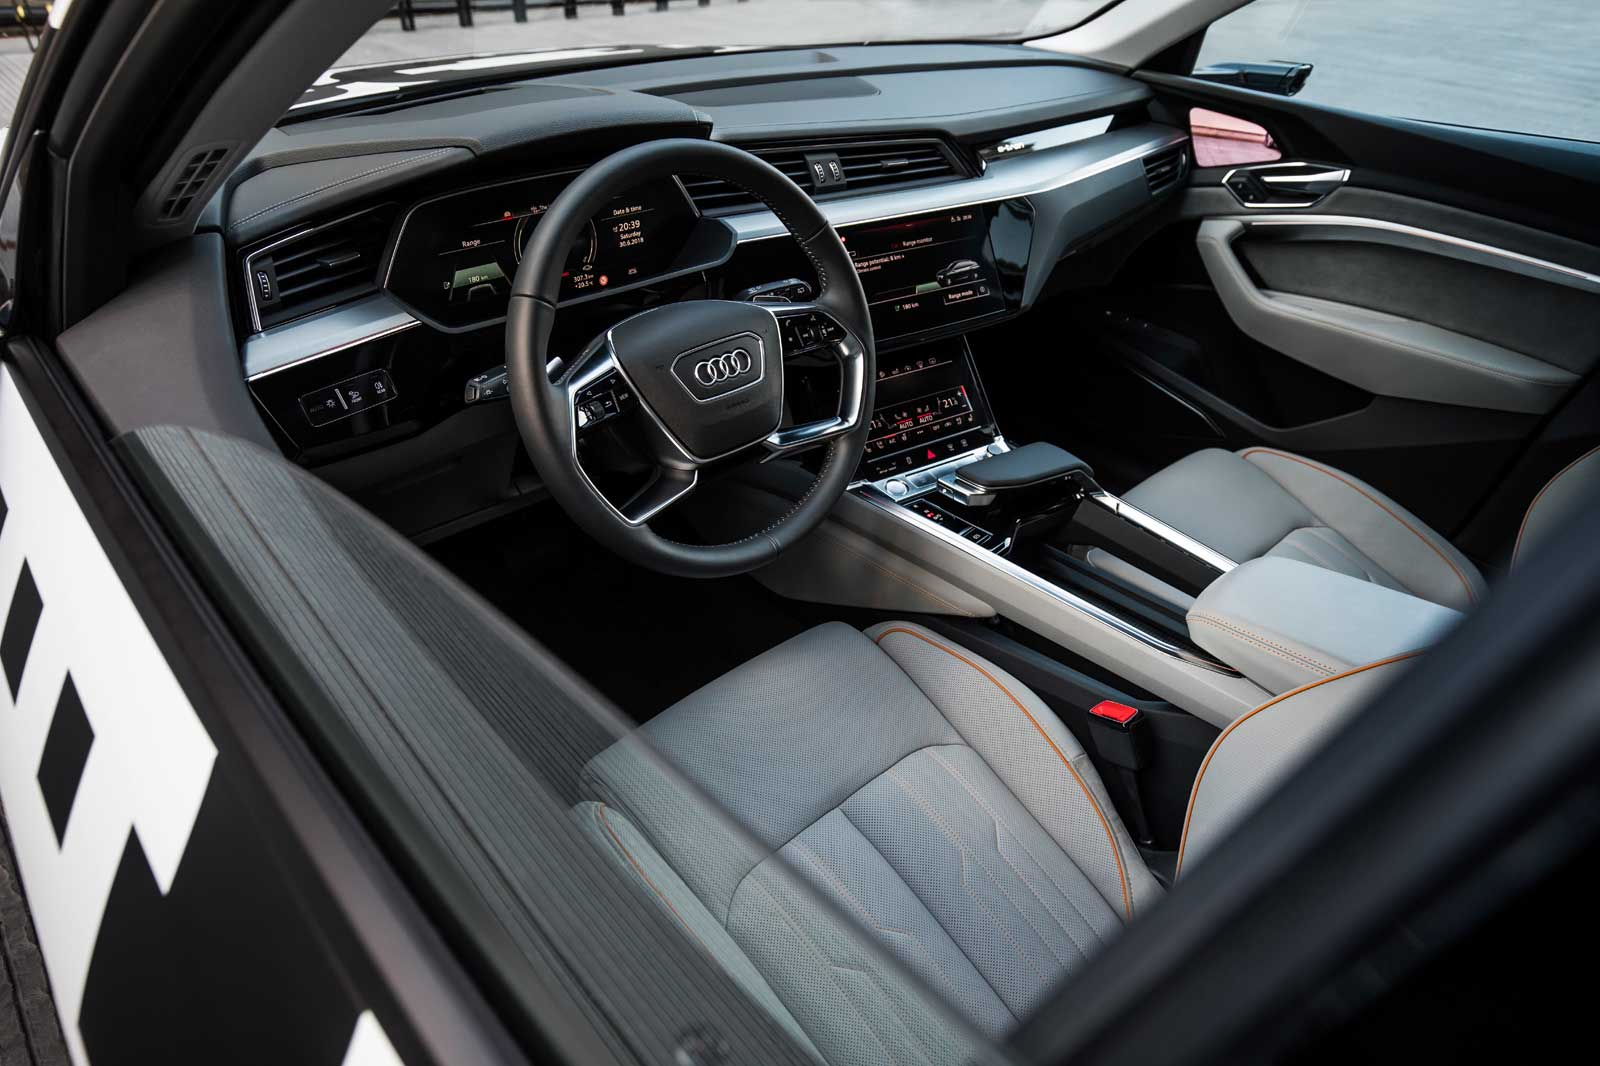 Audi Shows Off Its Electric SUVs Screenfilled Interior - Audi interior